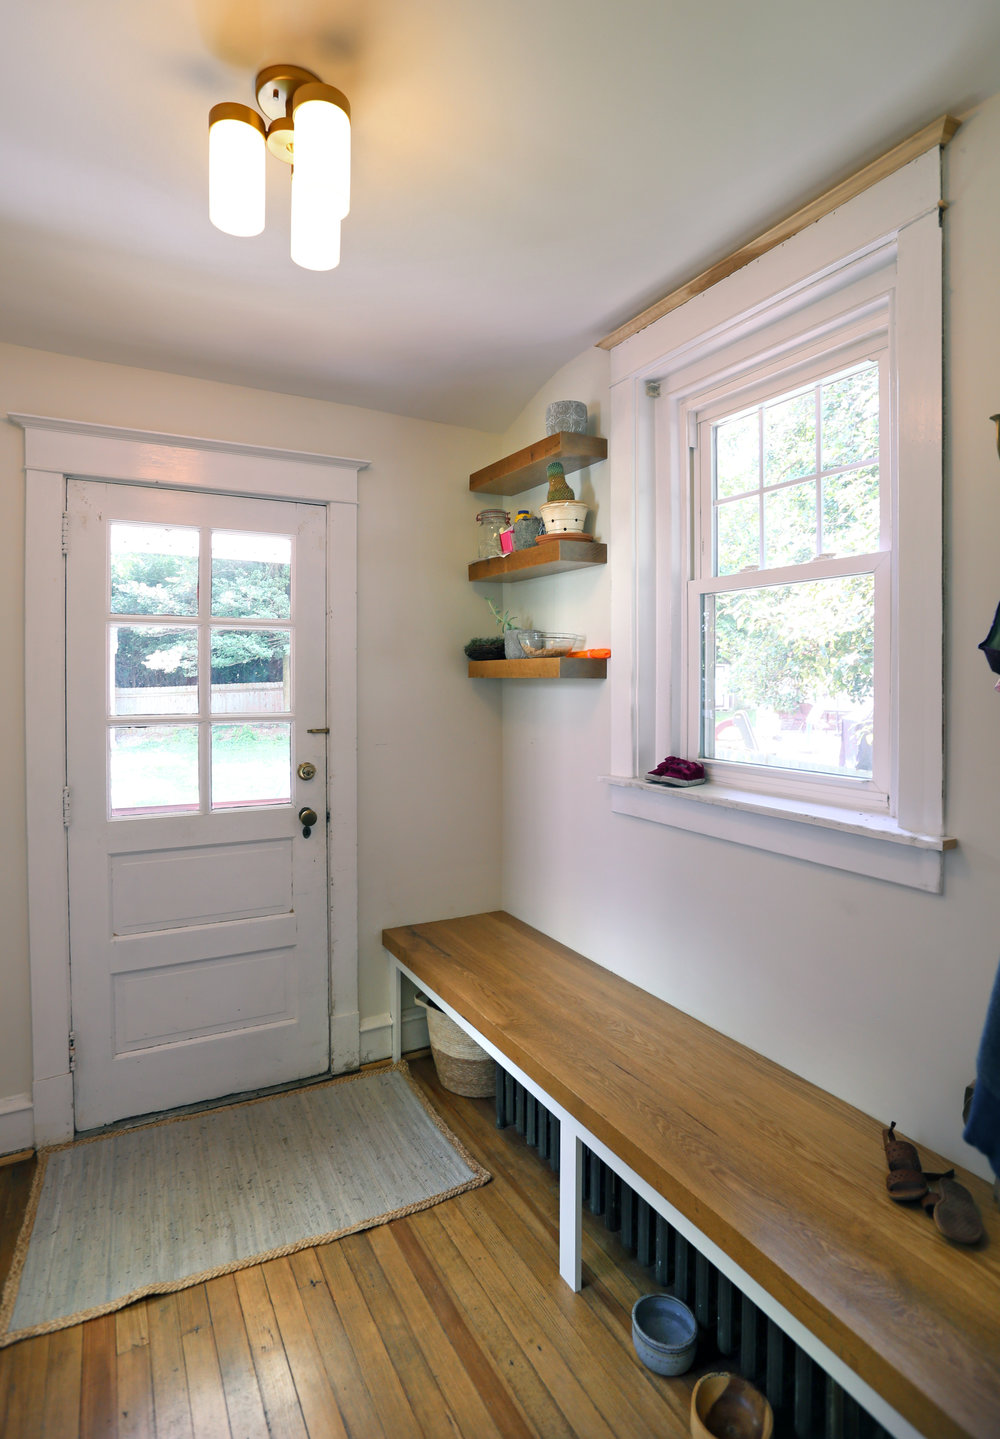 The remainder of the mudroom received a new lowboy radiator, rough-sawn floating maple shelves, refinished floors, and a new mudroom bench with a solid maple top.